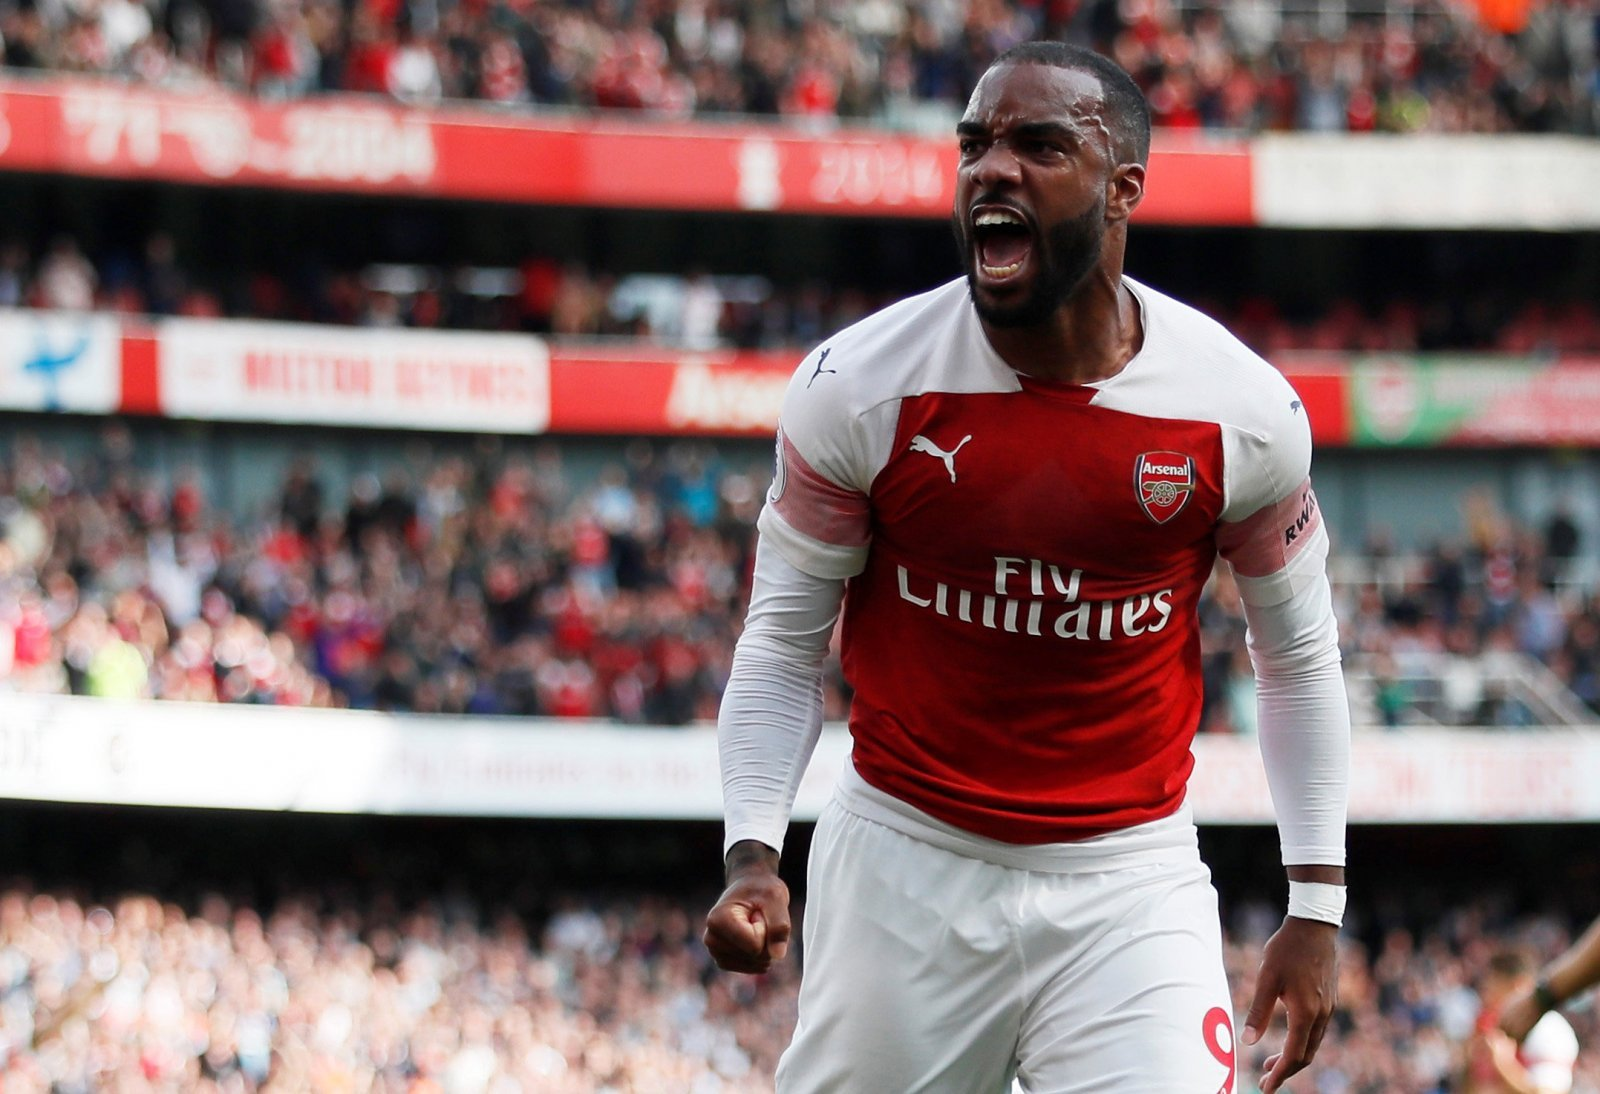 Introducing: Alexandre Lacazette, the man who will thrill Arsenal fans in 19/20